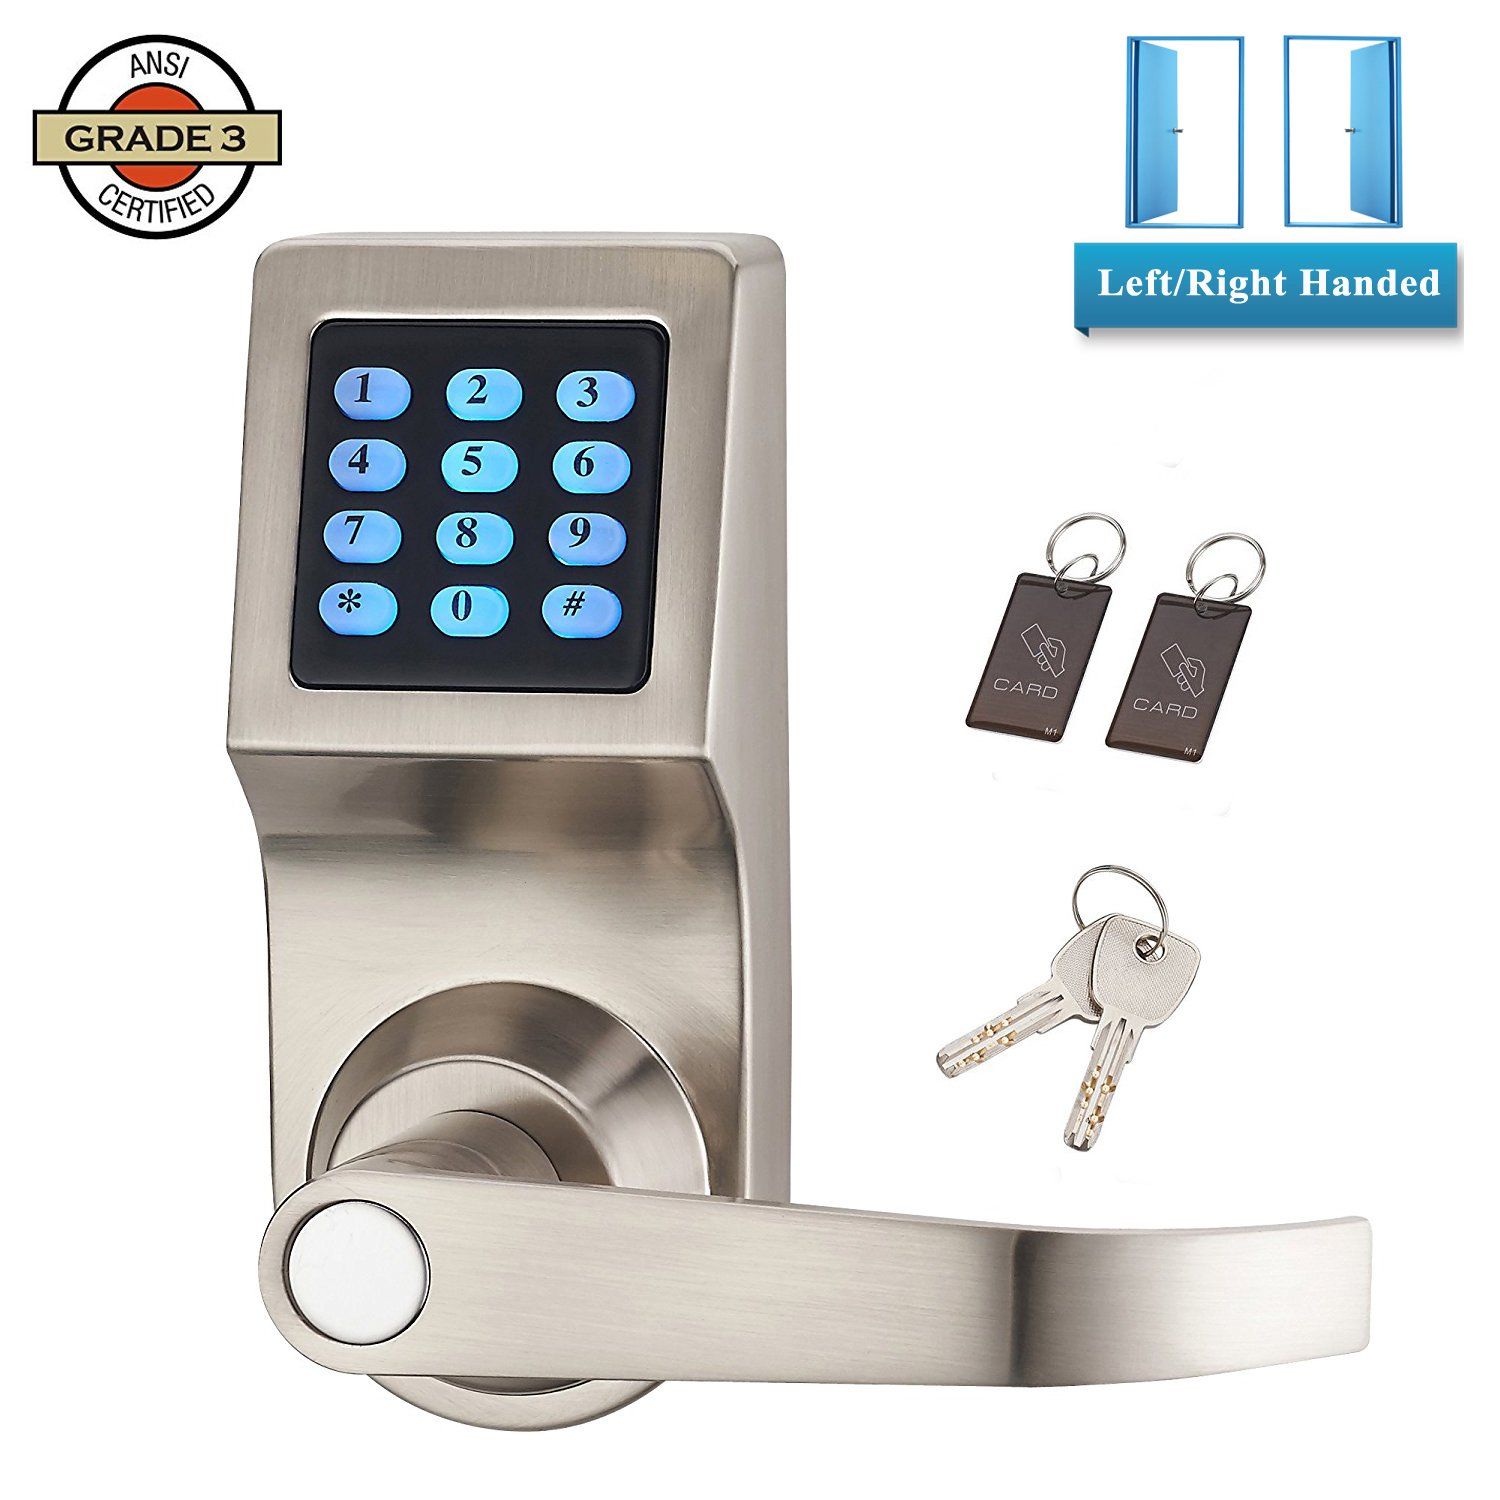 Digital Door Lever Keyless Entry Lock Electronic Entry Digital Code Keypad Password With Hidden Key for Emergency 6-10 Digits Reversible Lever Home Security Safety Lock Zinc Alloy Satin Nickel